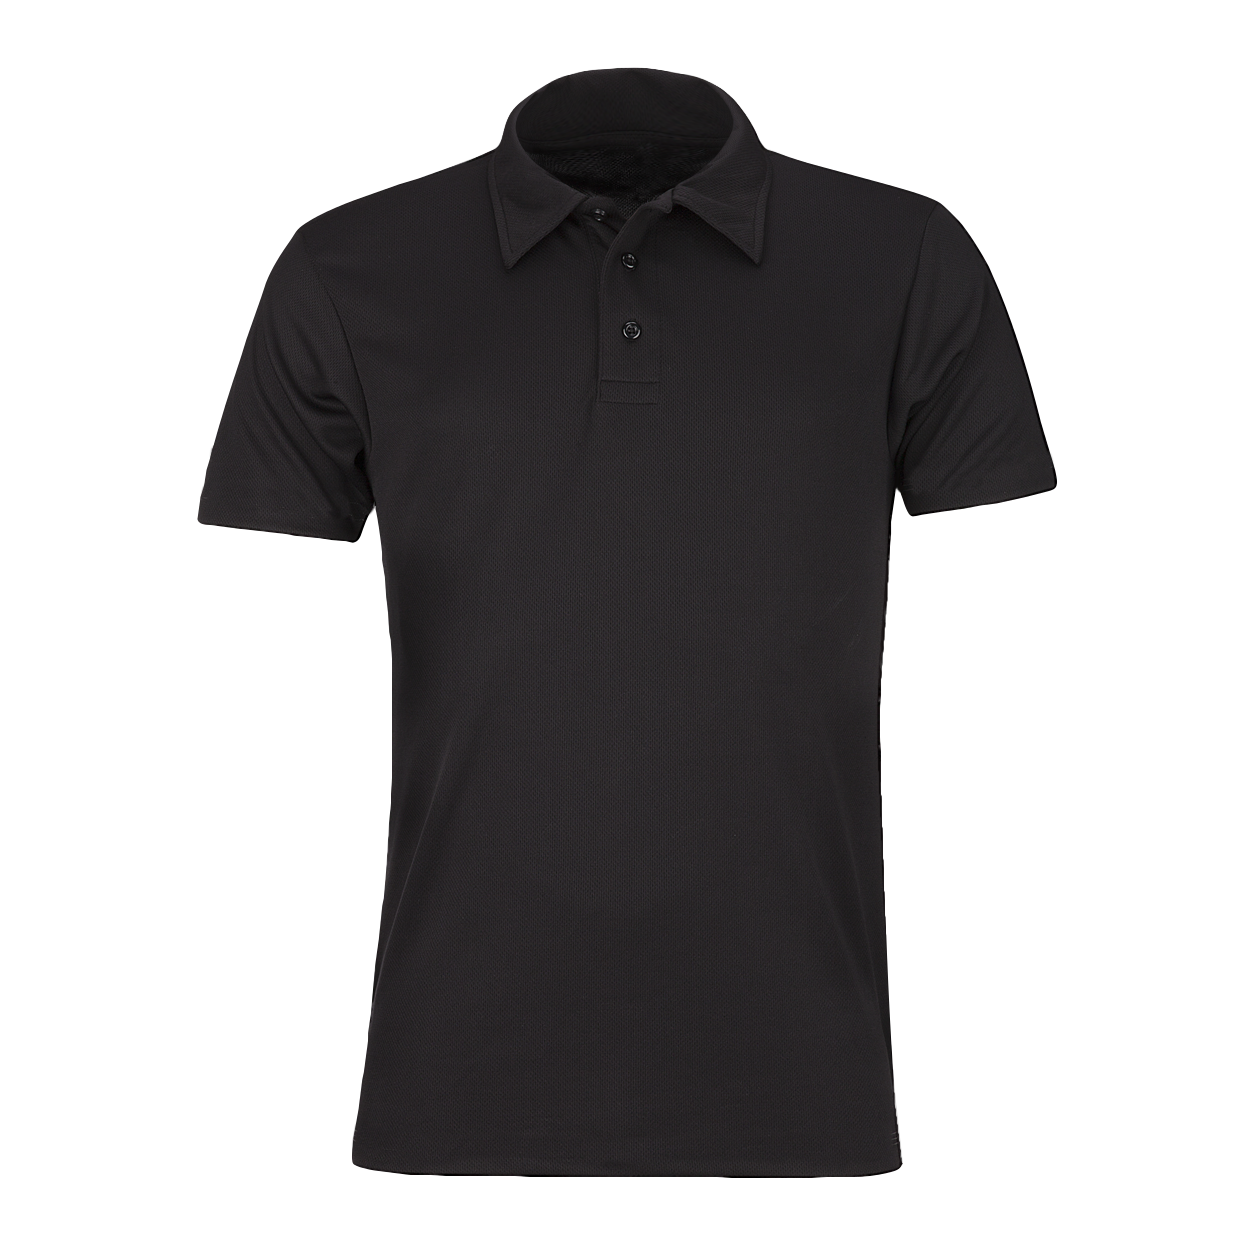 Plain Black Polo Shirt PNG Image